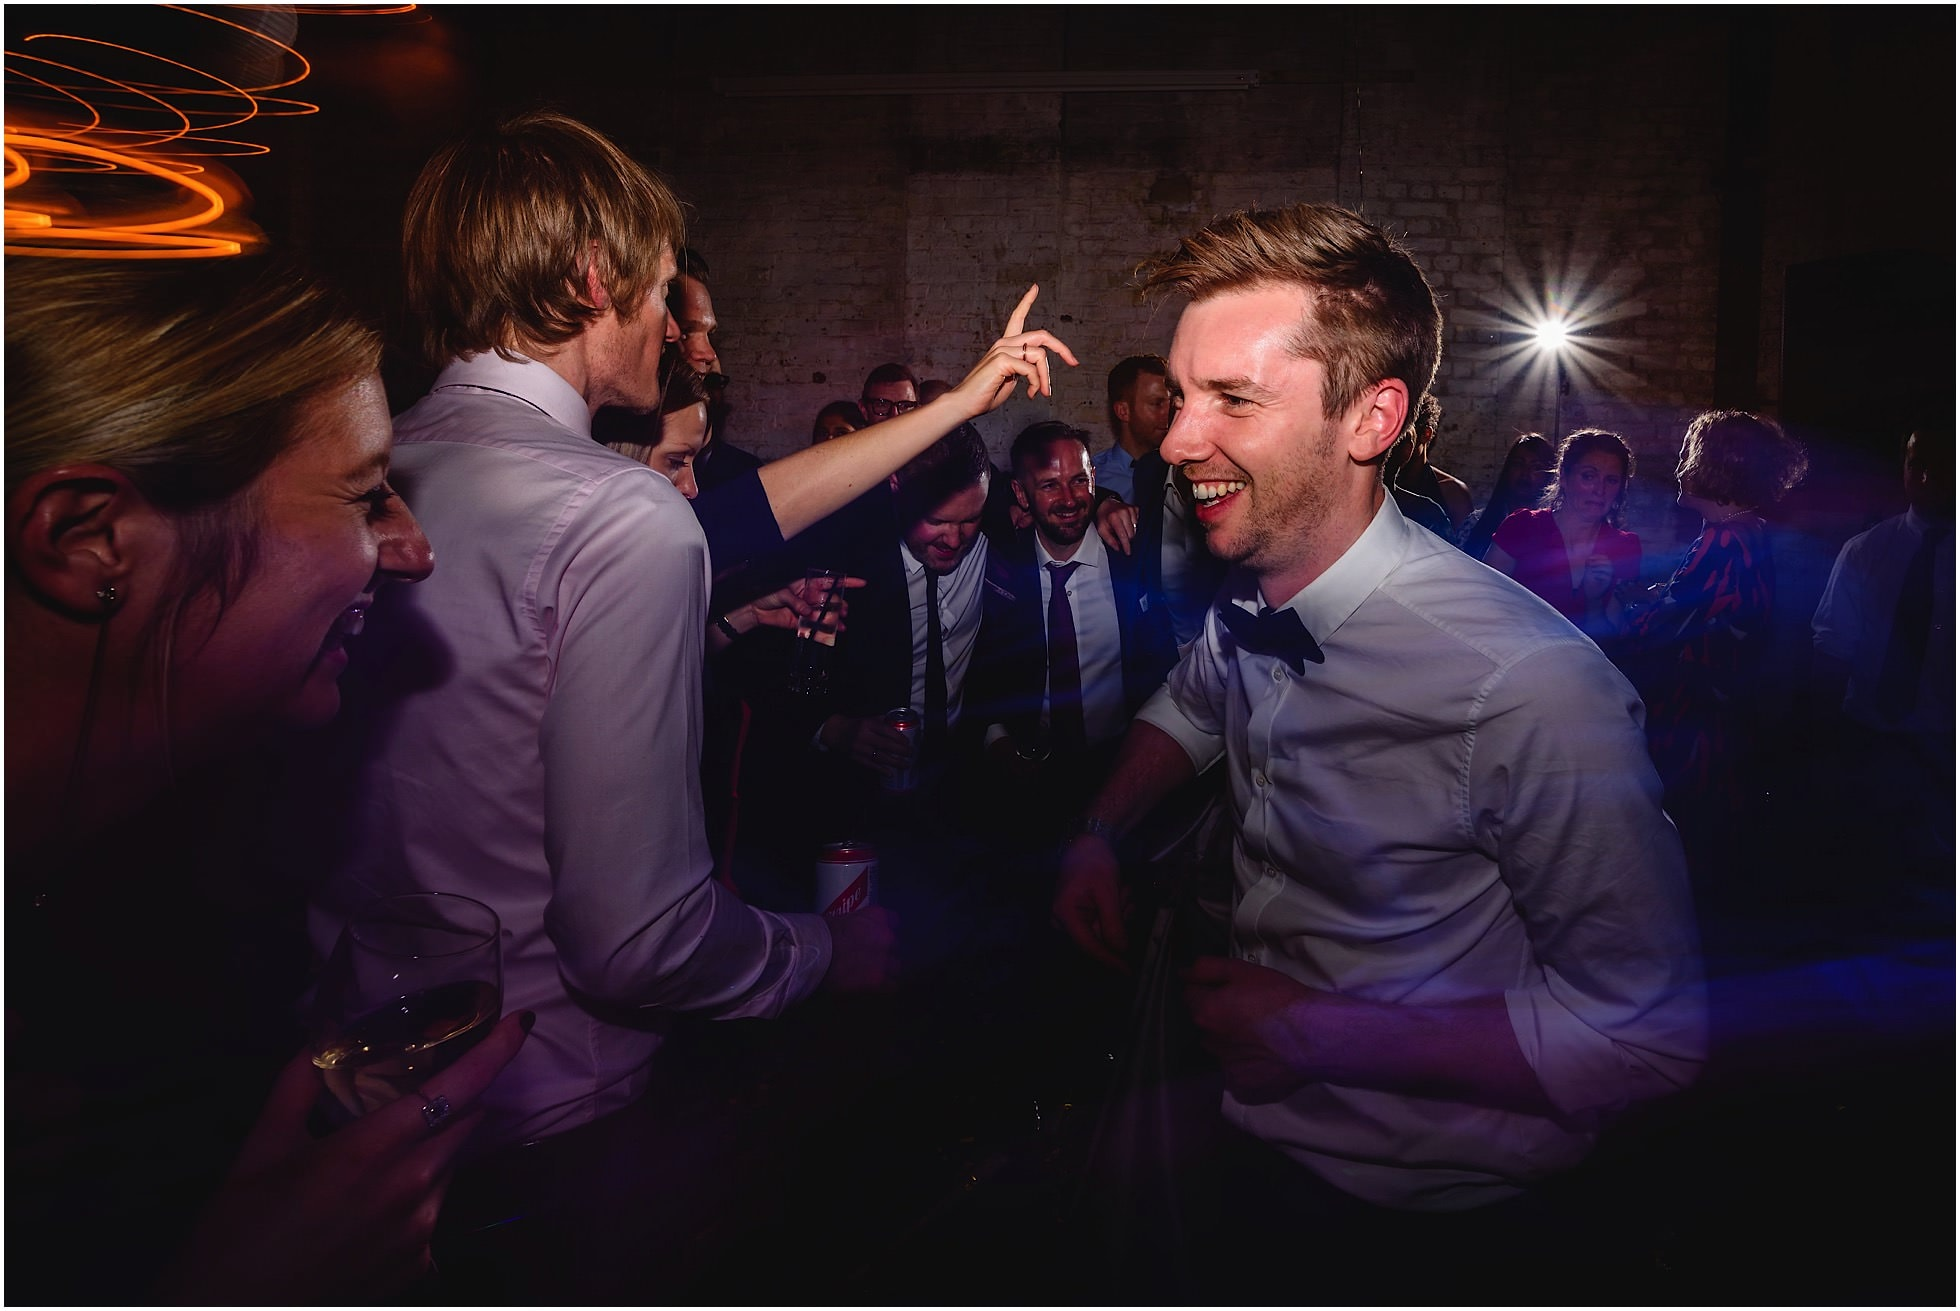 Groom having the best night of his life